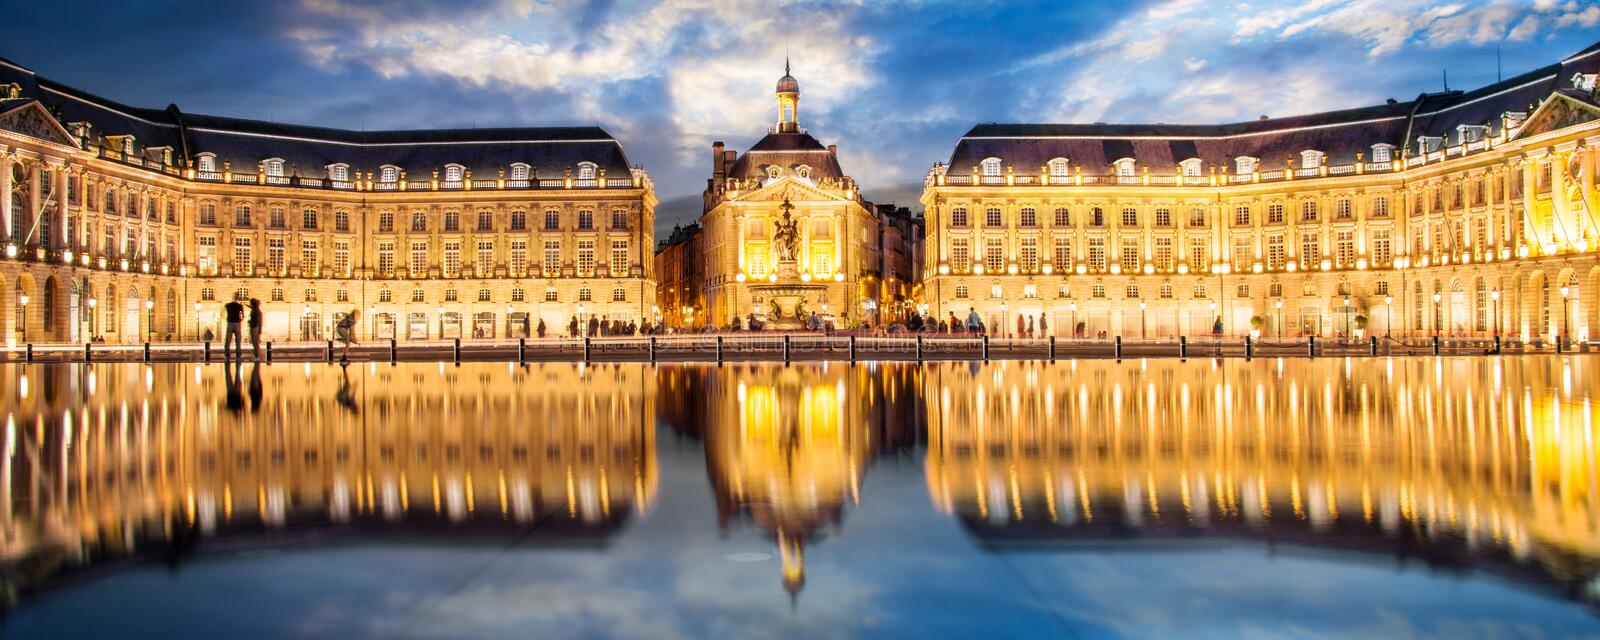 Place la Bourse in Bordeaux, the water mirror by night France royalty free stock photos